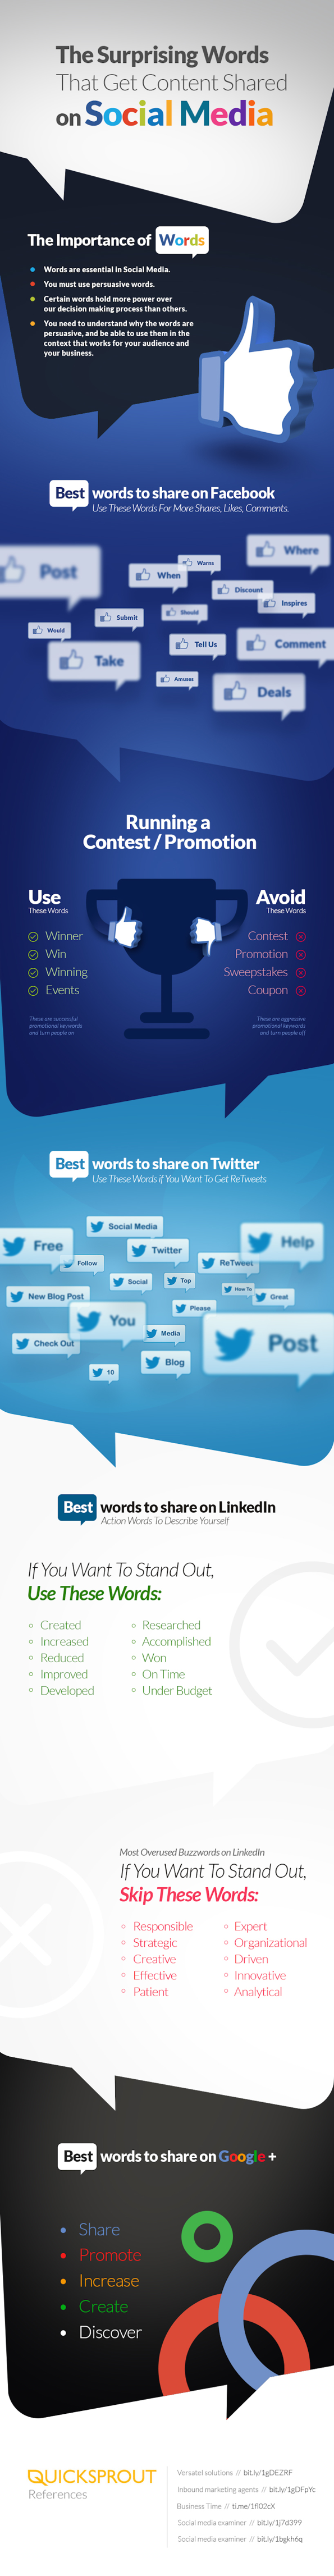 Most Popular Words in Social Media That Will Get Your Content Shared Infographic image